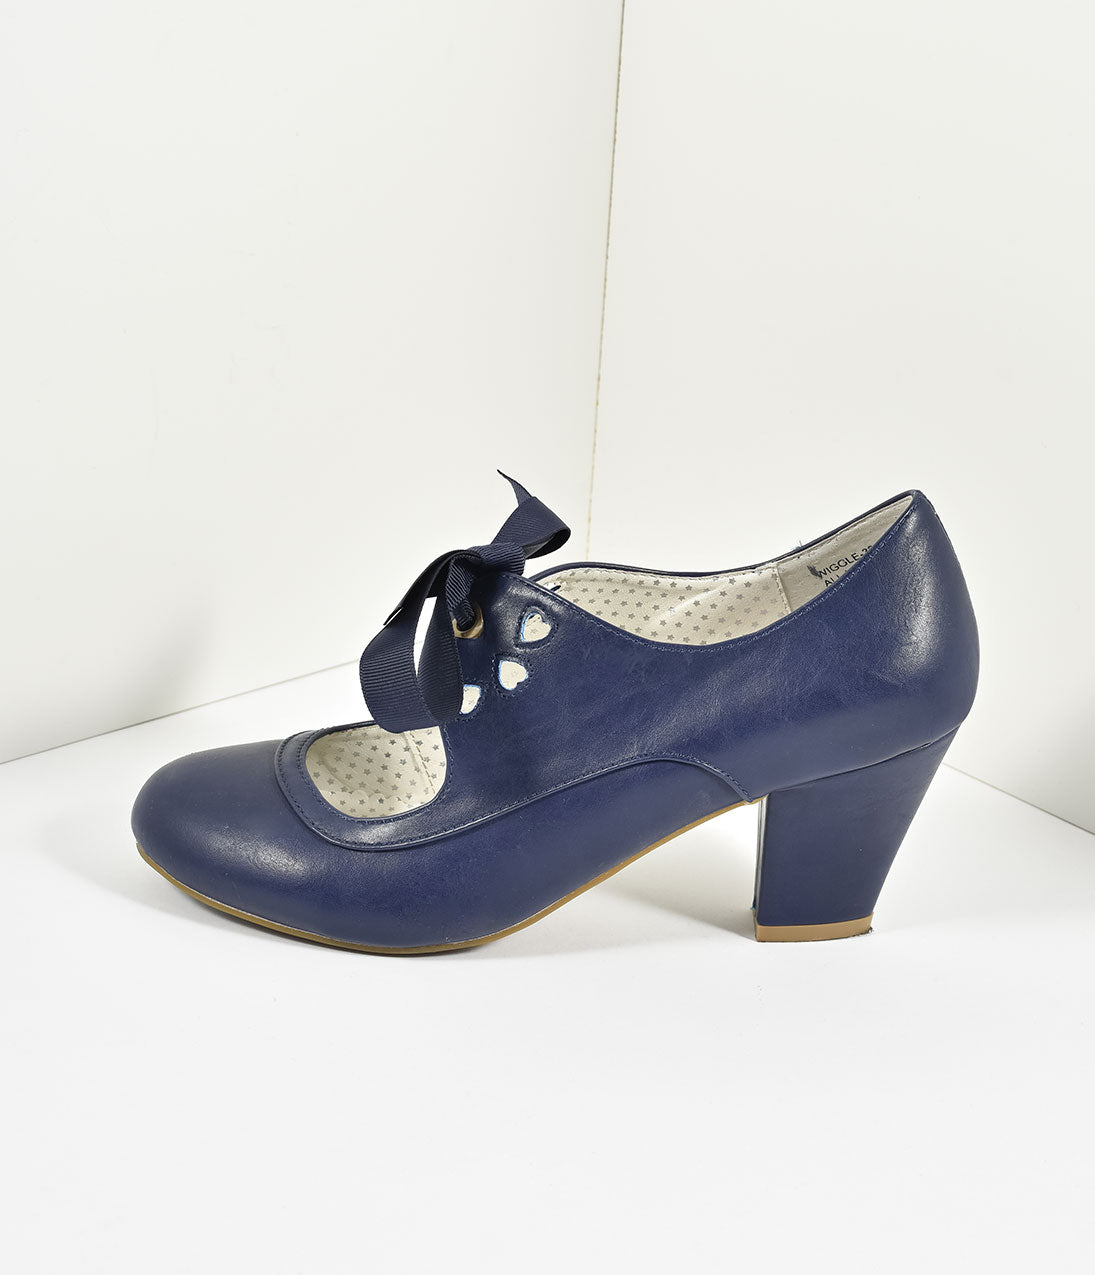 Rockabilly Shoes- Heels, Pumps, Boots, Flats Vintage Style Navy Blue Leatherette Mary Jane Bow Wiggle Heels $58.00 AT vintagedancer.com